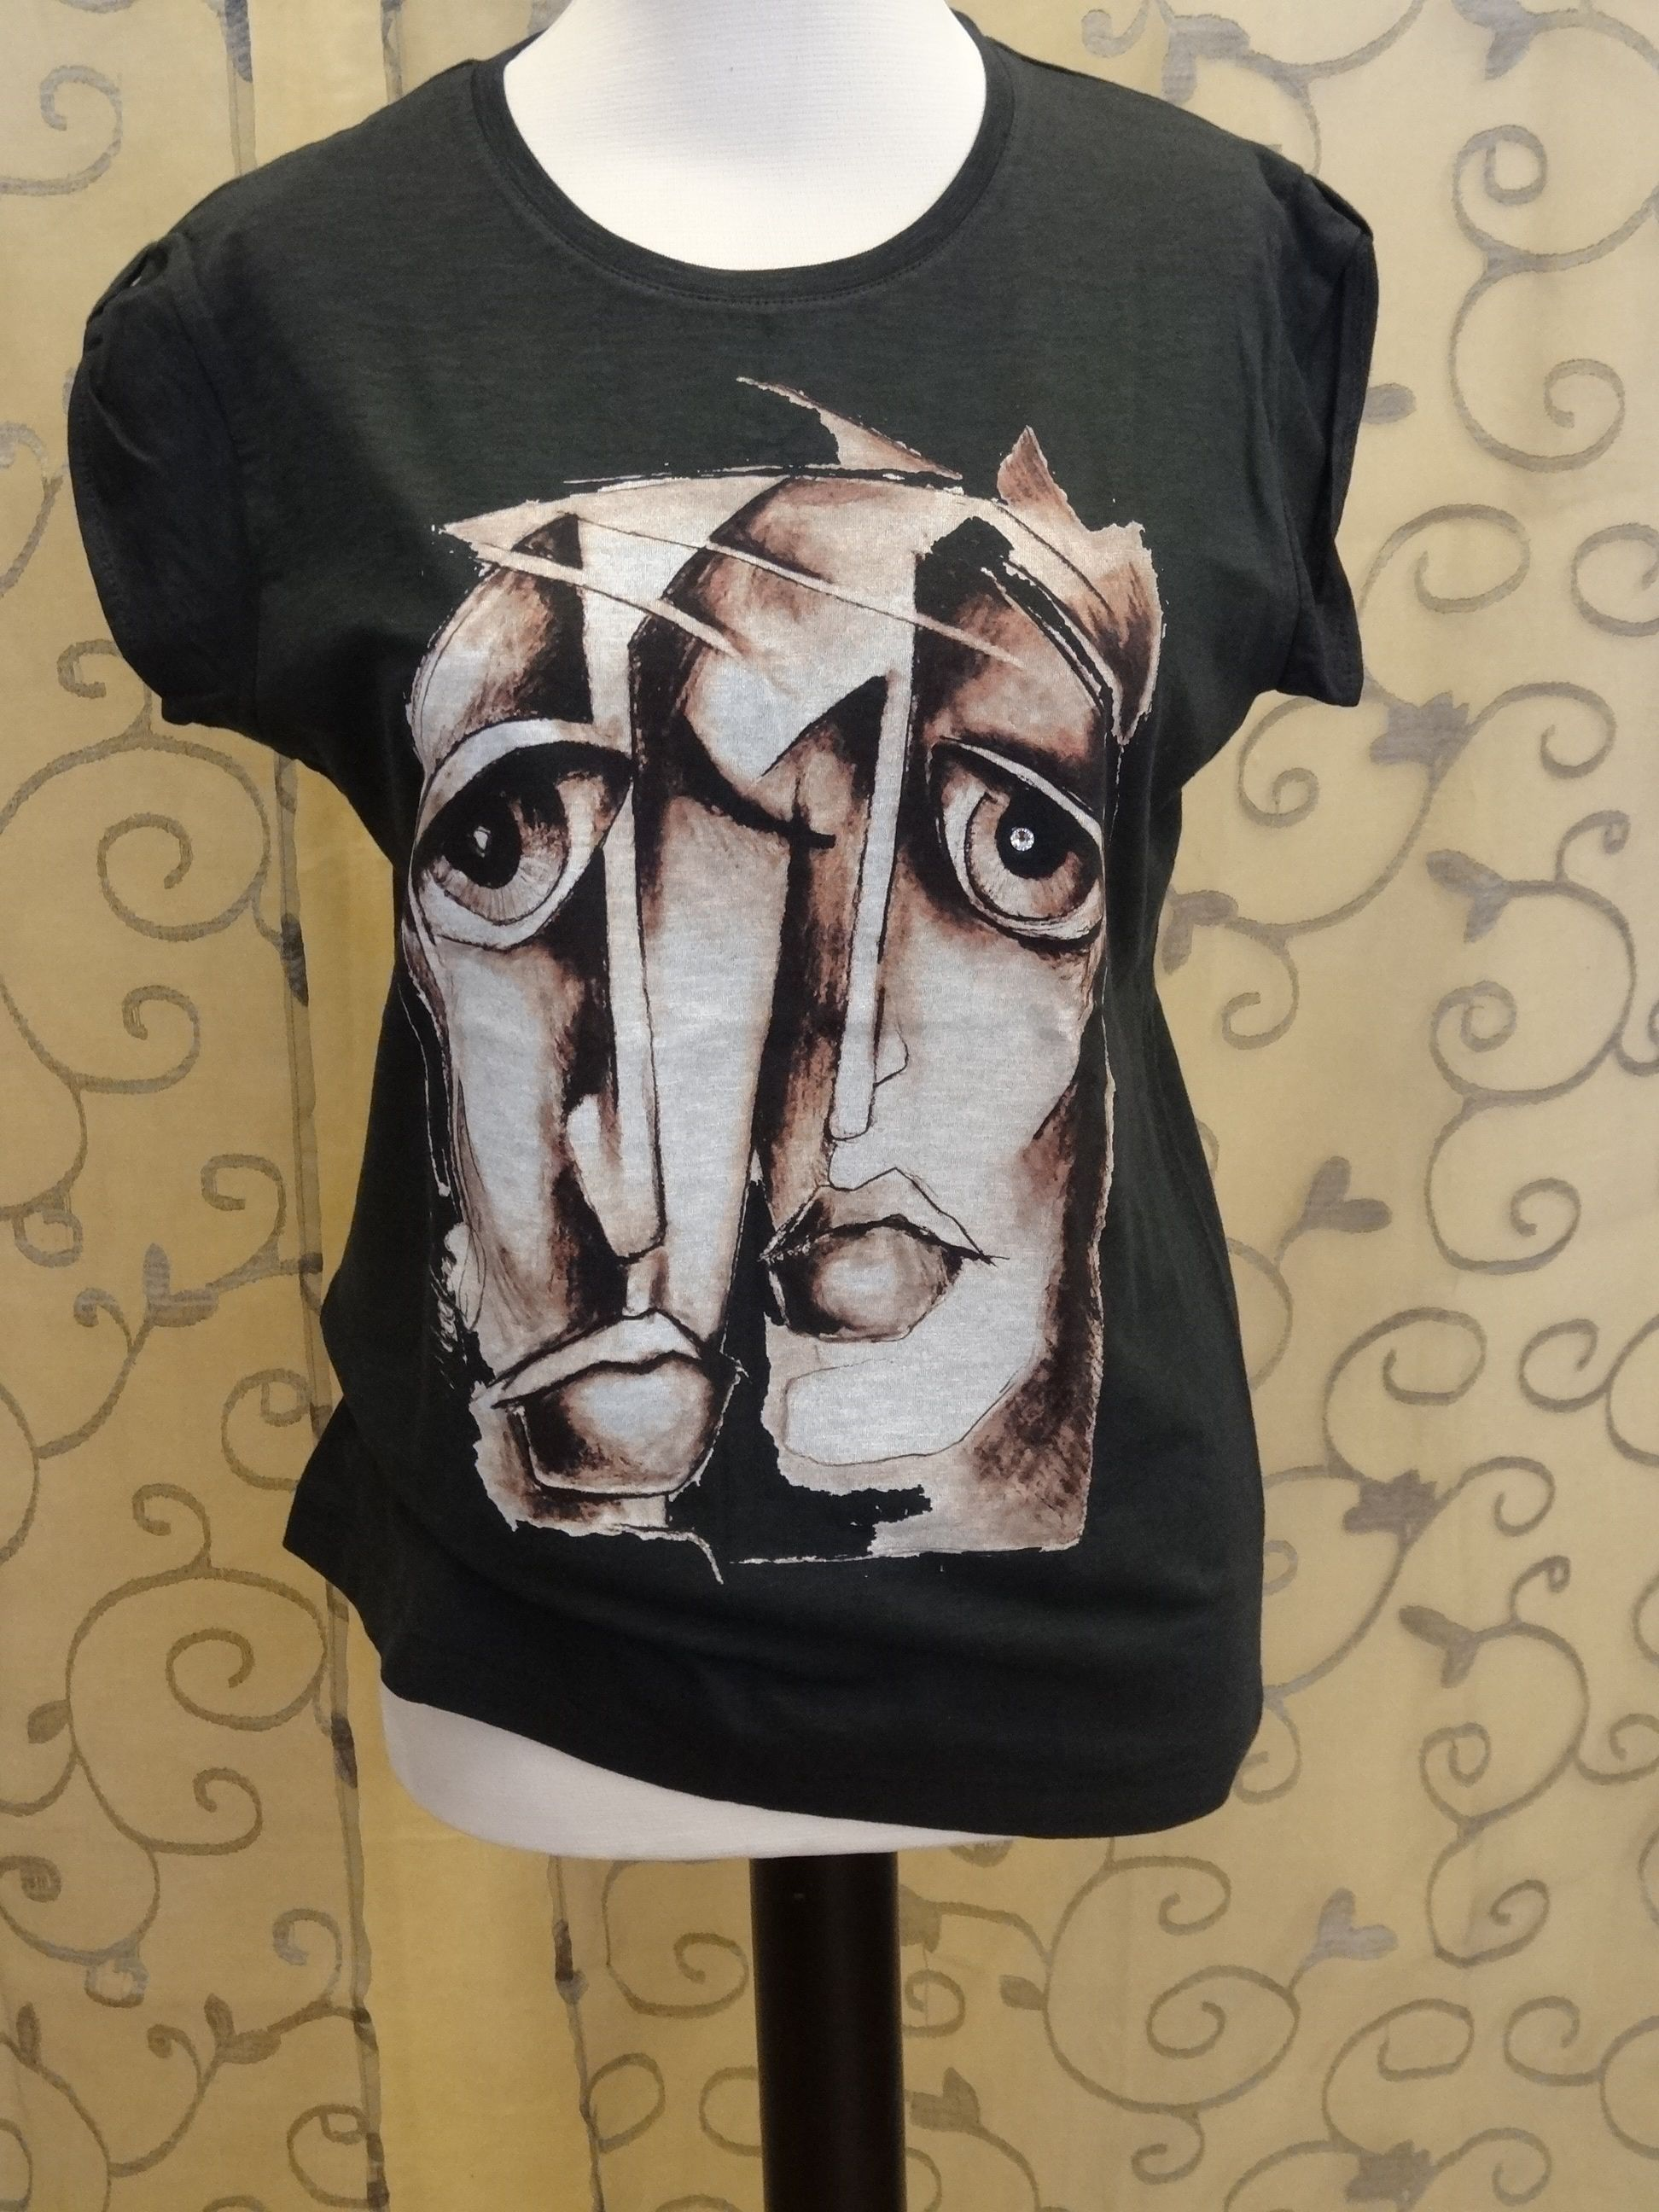 Womens T-shirt with original painters design garanteed by certificate, 100% cotton, stylish sleeve. Top Ten T's